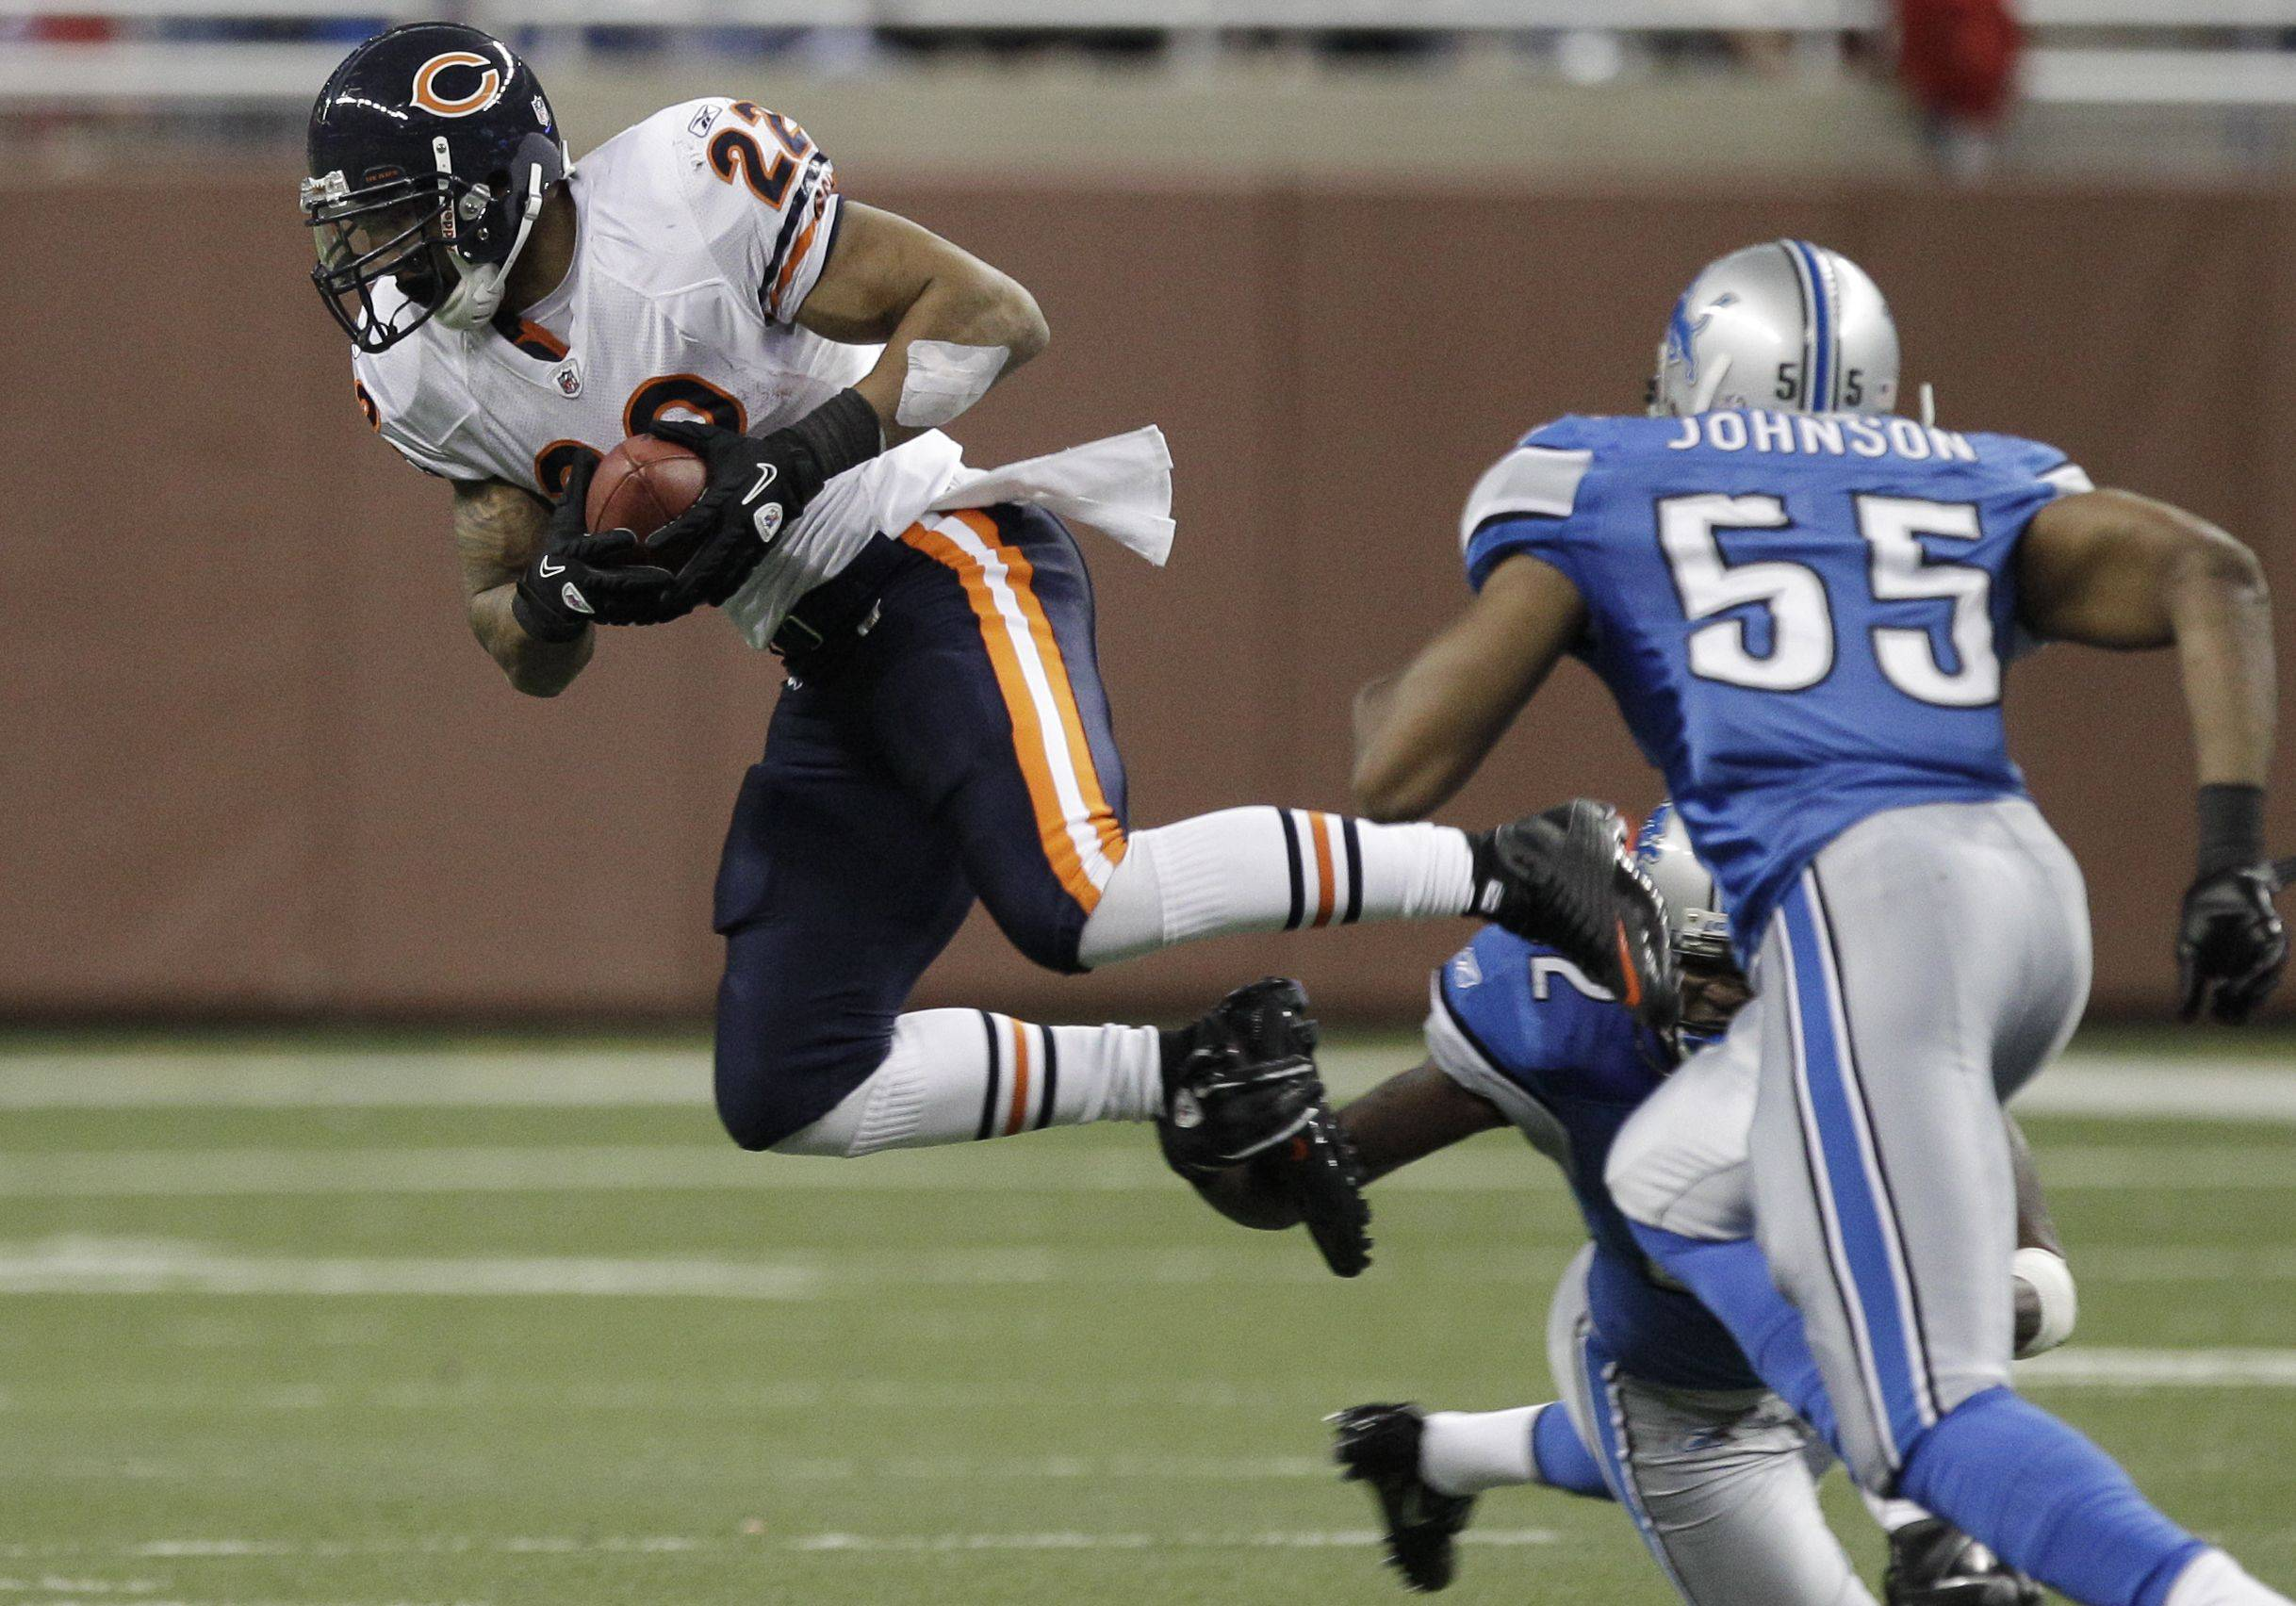 Chicago Bears running back Matt Forte is tripped up on a reception against the Detroit Lions in the fourth quarter. Chicago won 24-20.